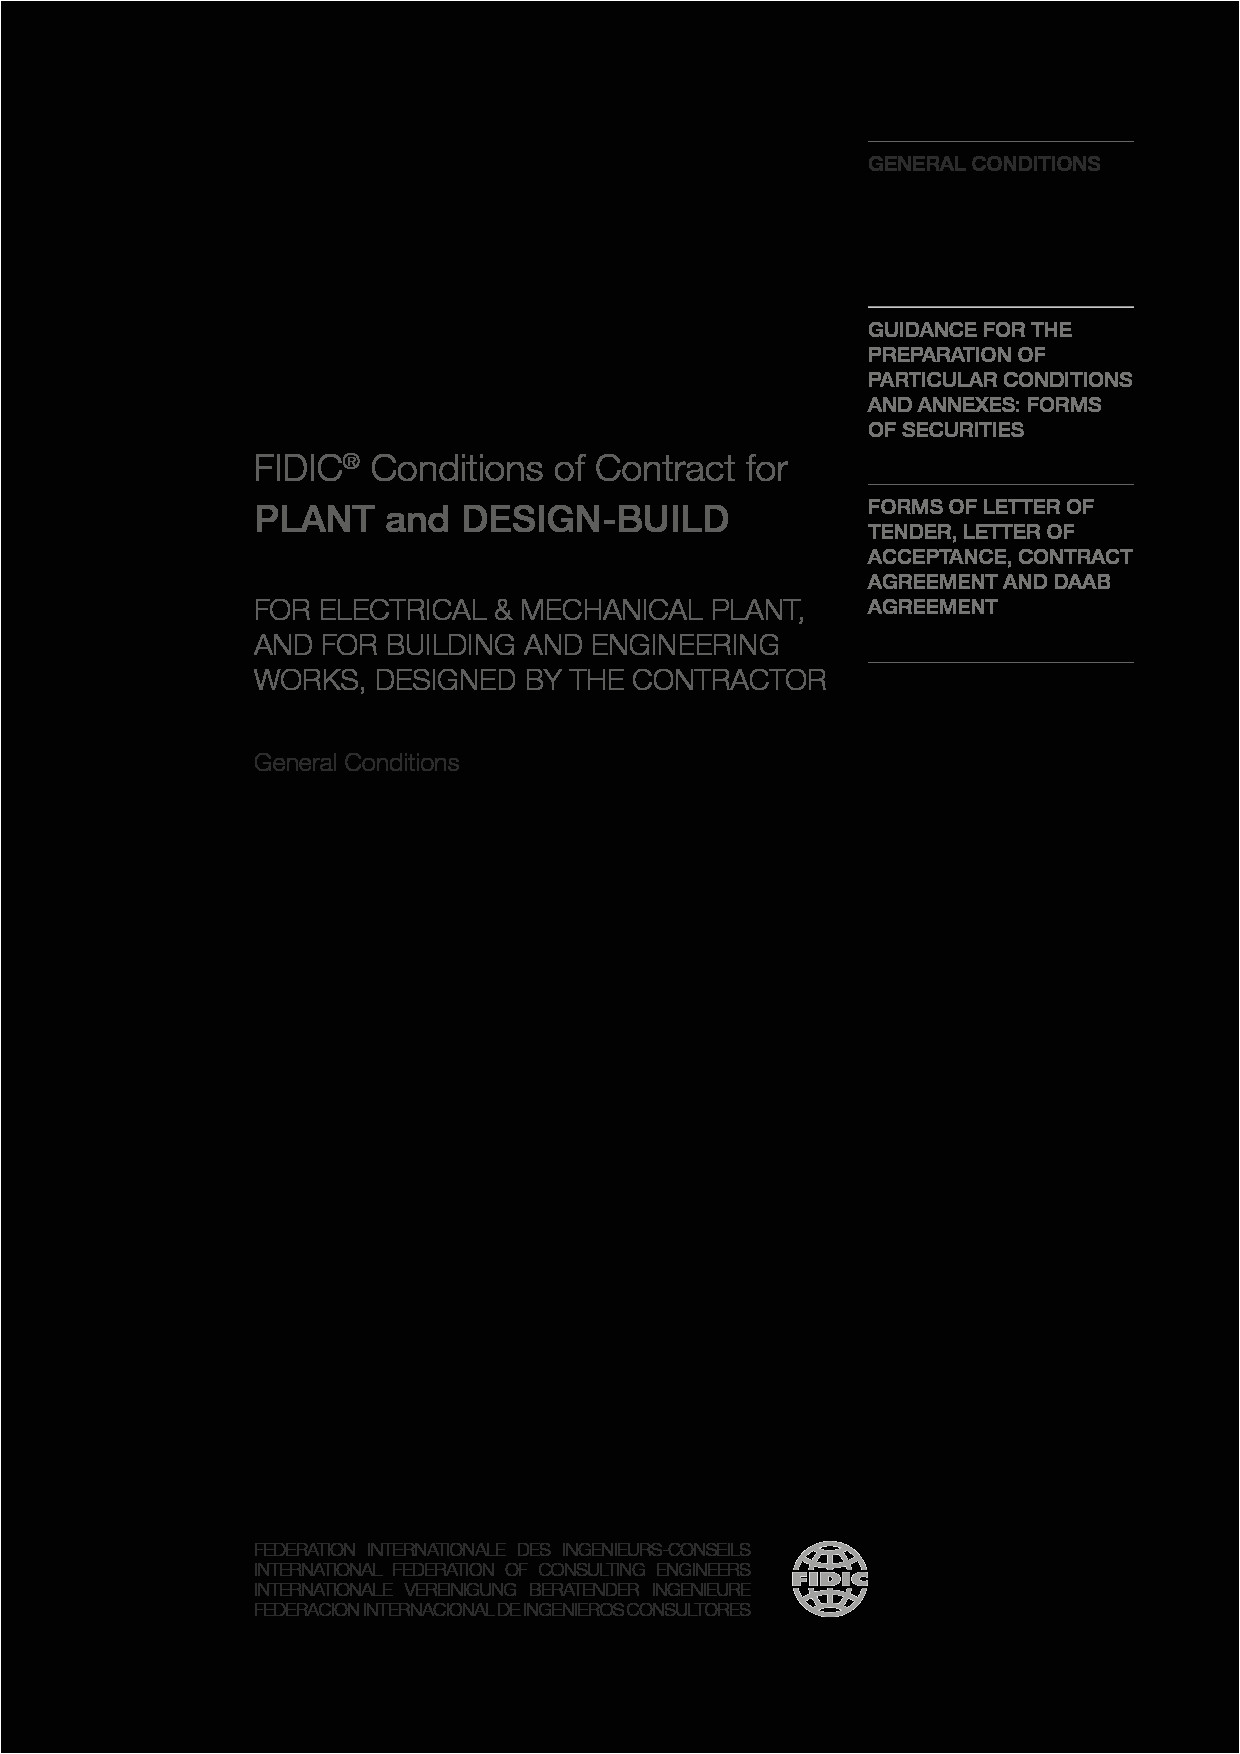 Fidic Yellow Book Contract Template Plant and Design Build Contract 2nd Ed 2017 Yellow Book